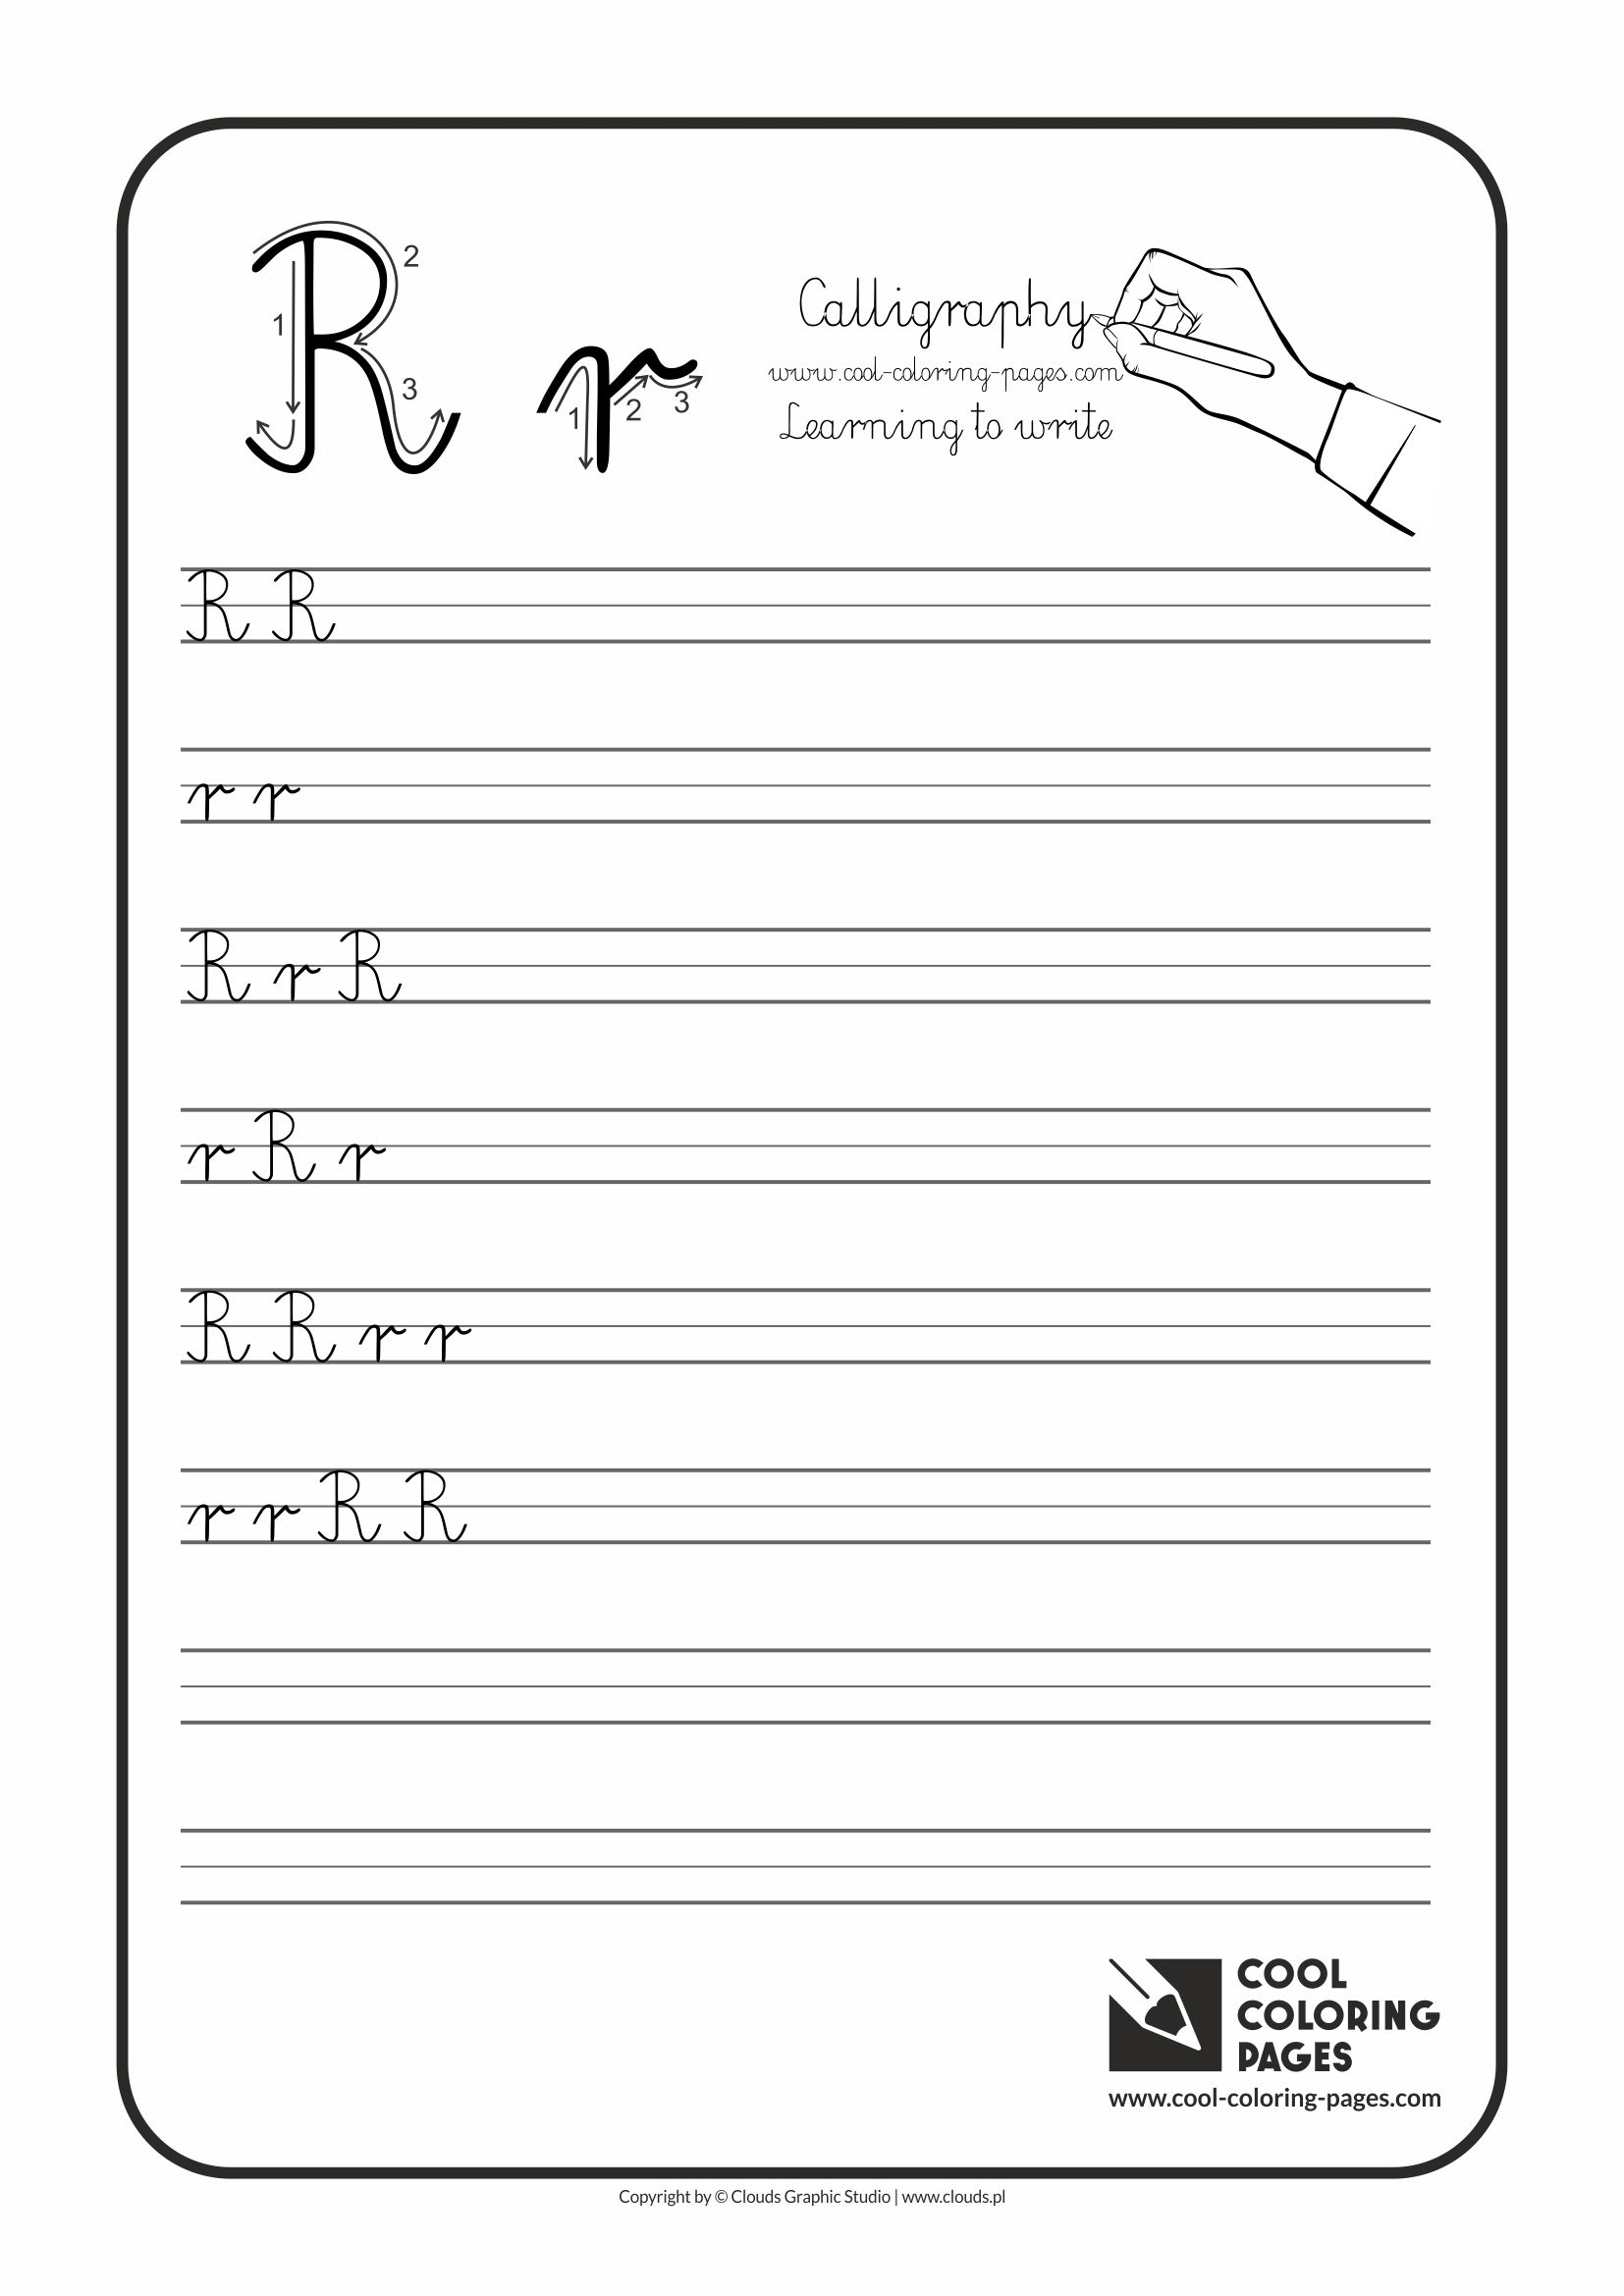 Coloring sheet of the letter t - Cool Coloring Pages Calligraphy Letter R Handwriting For Kids Worksheets